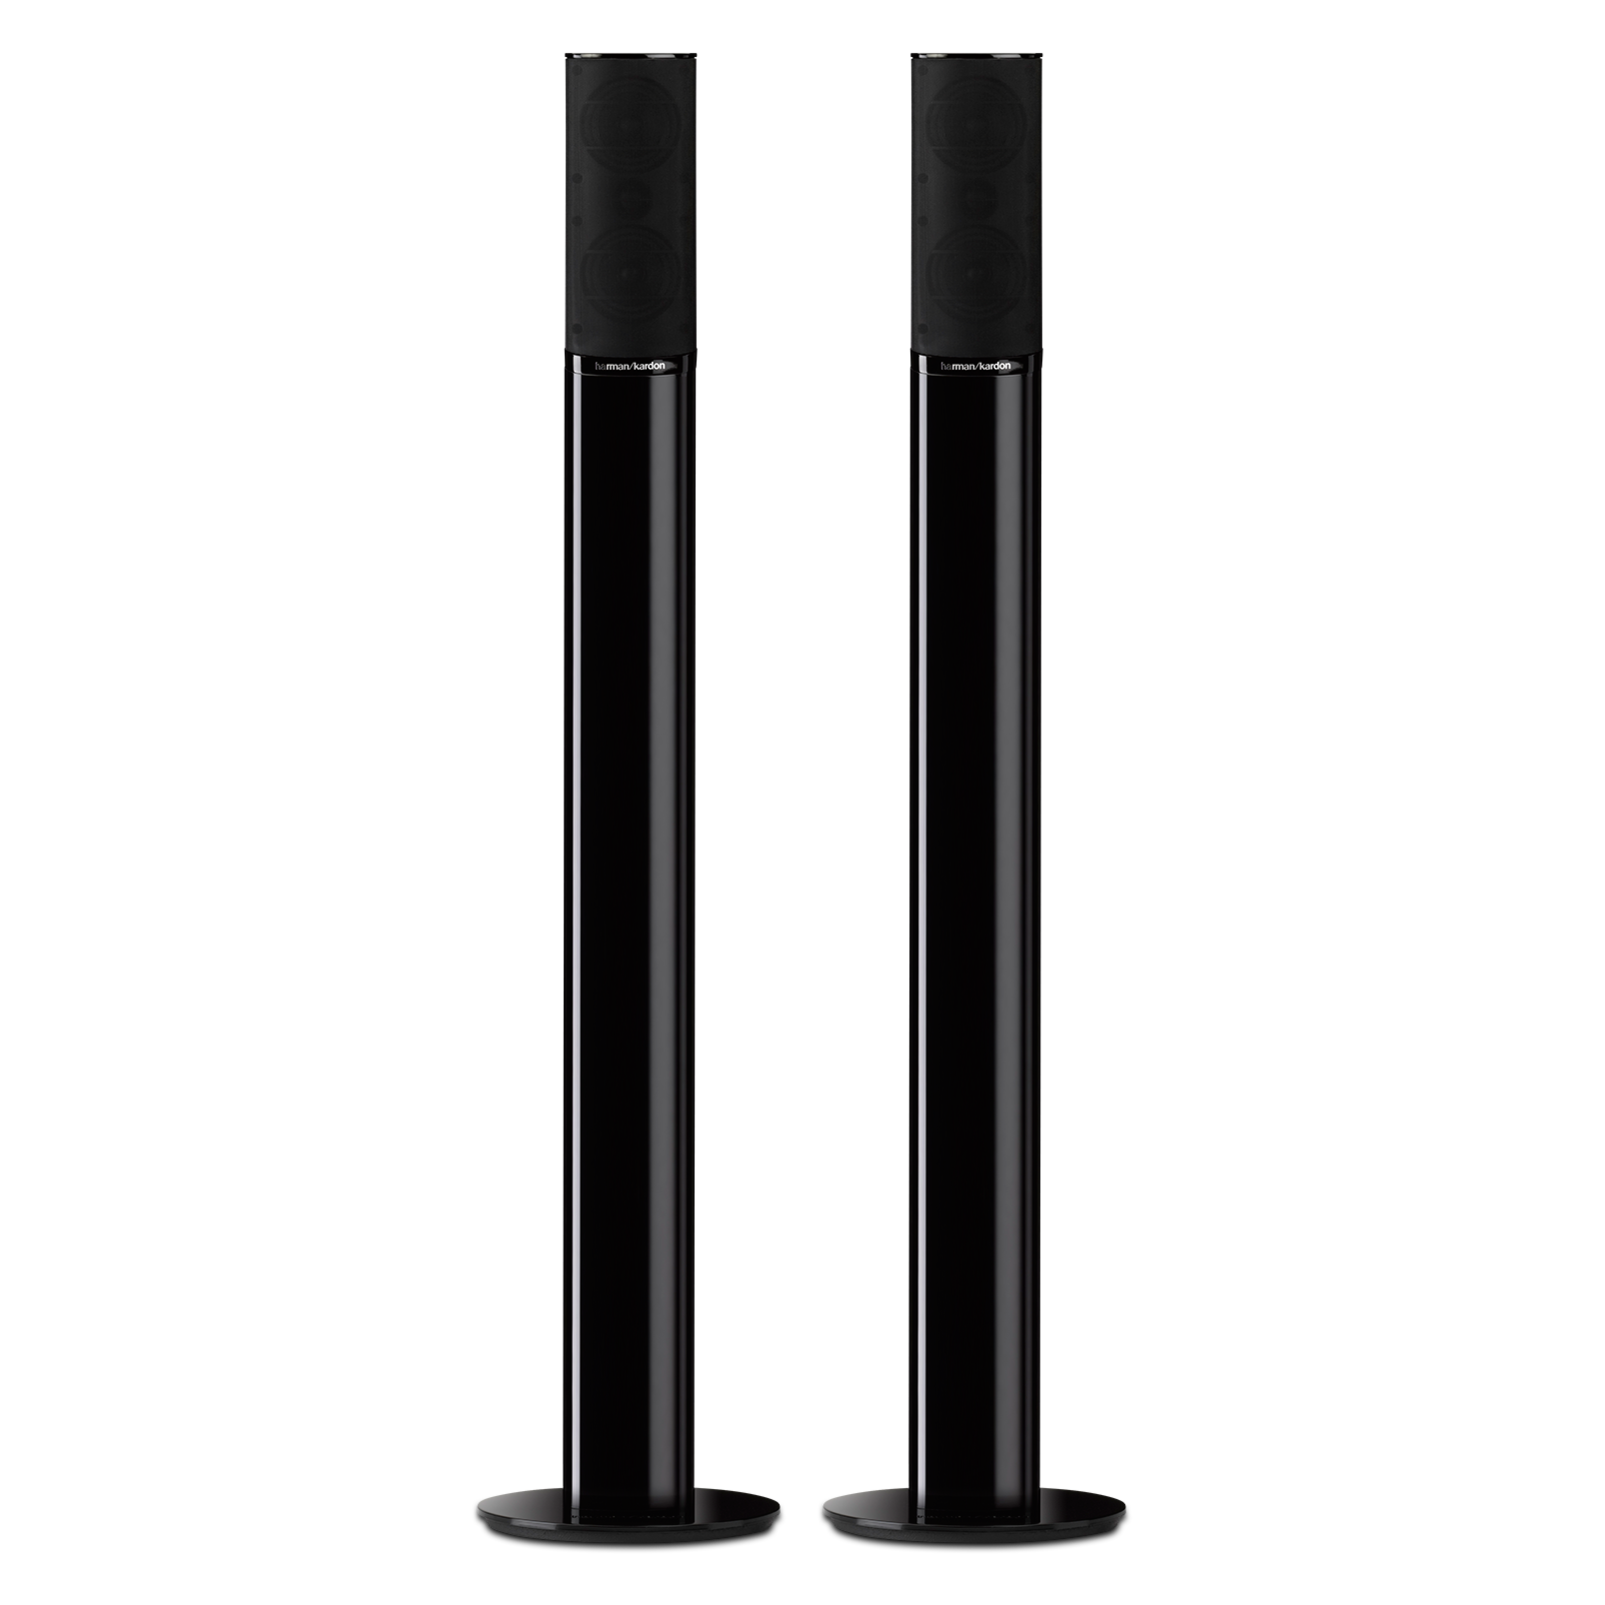 Harman Kardon HTFS 2 Audio Floorstands